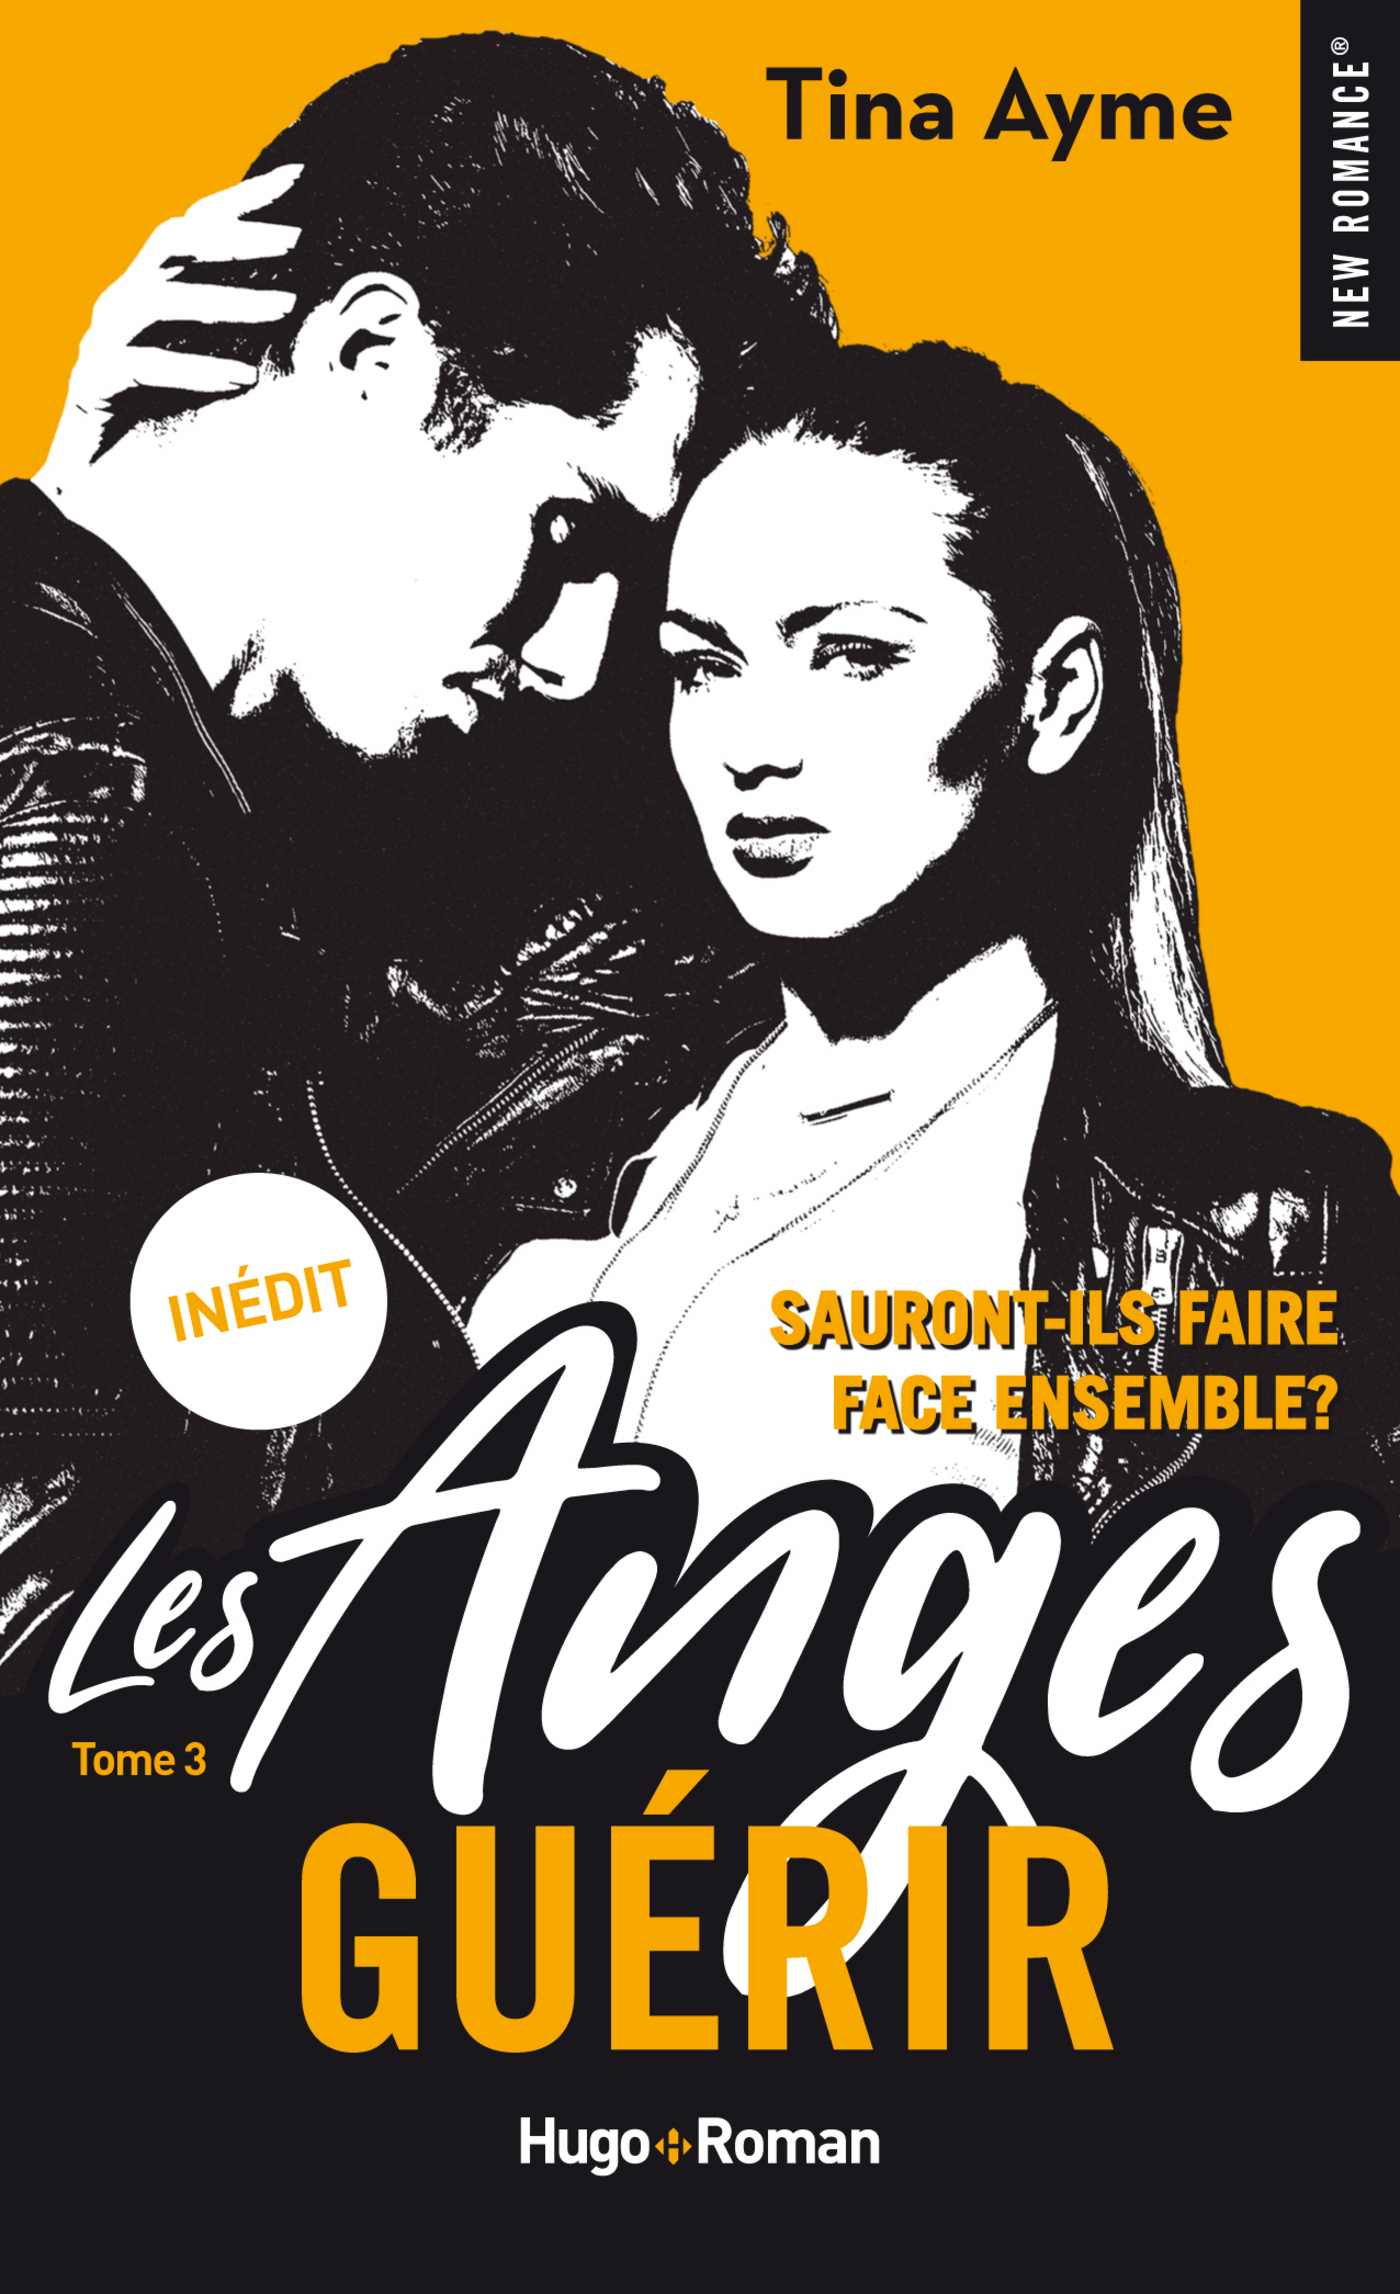 Les anges - tome 3 Guérir